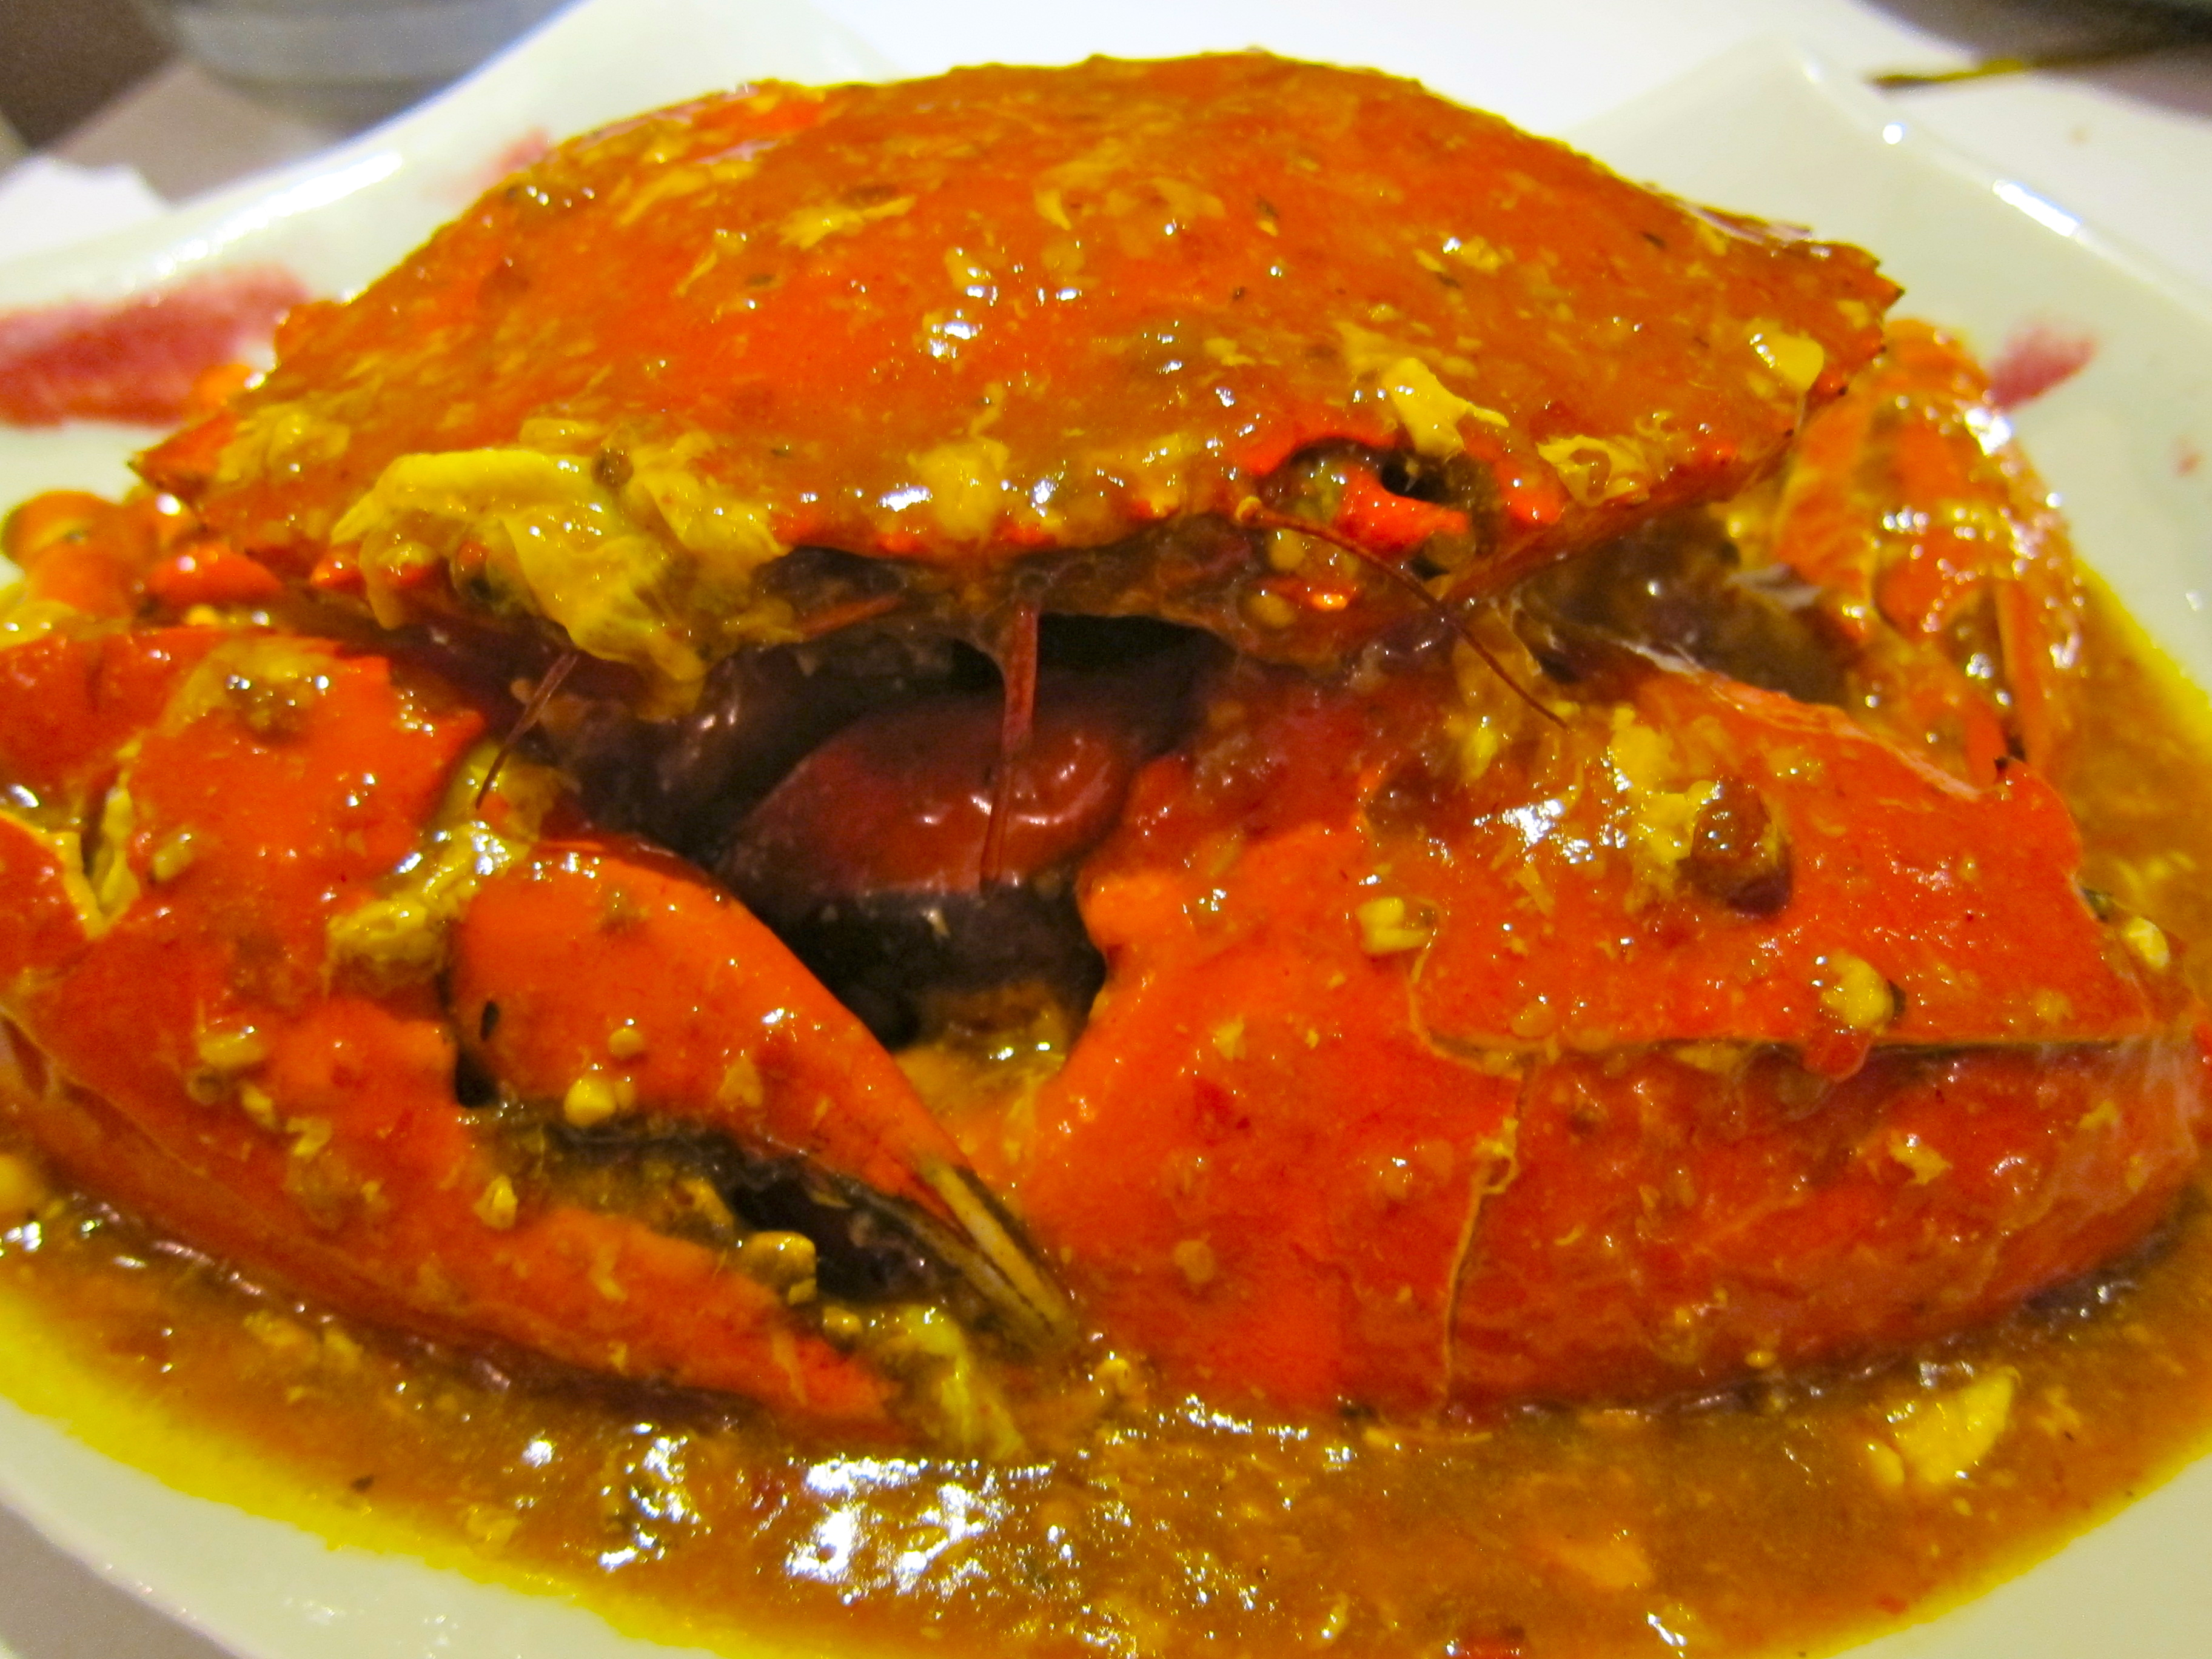 Singaporean chili & pepper crab at Pulau Ketam, Shanghai ...